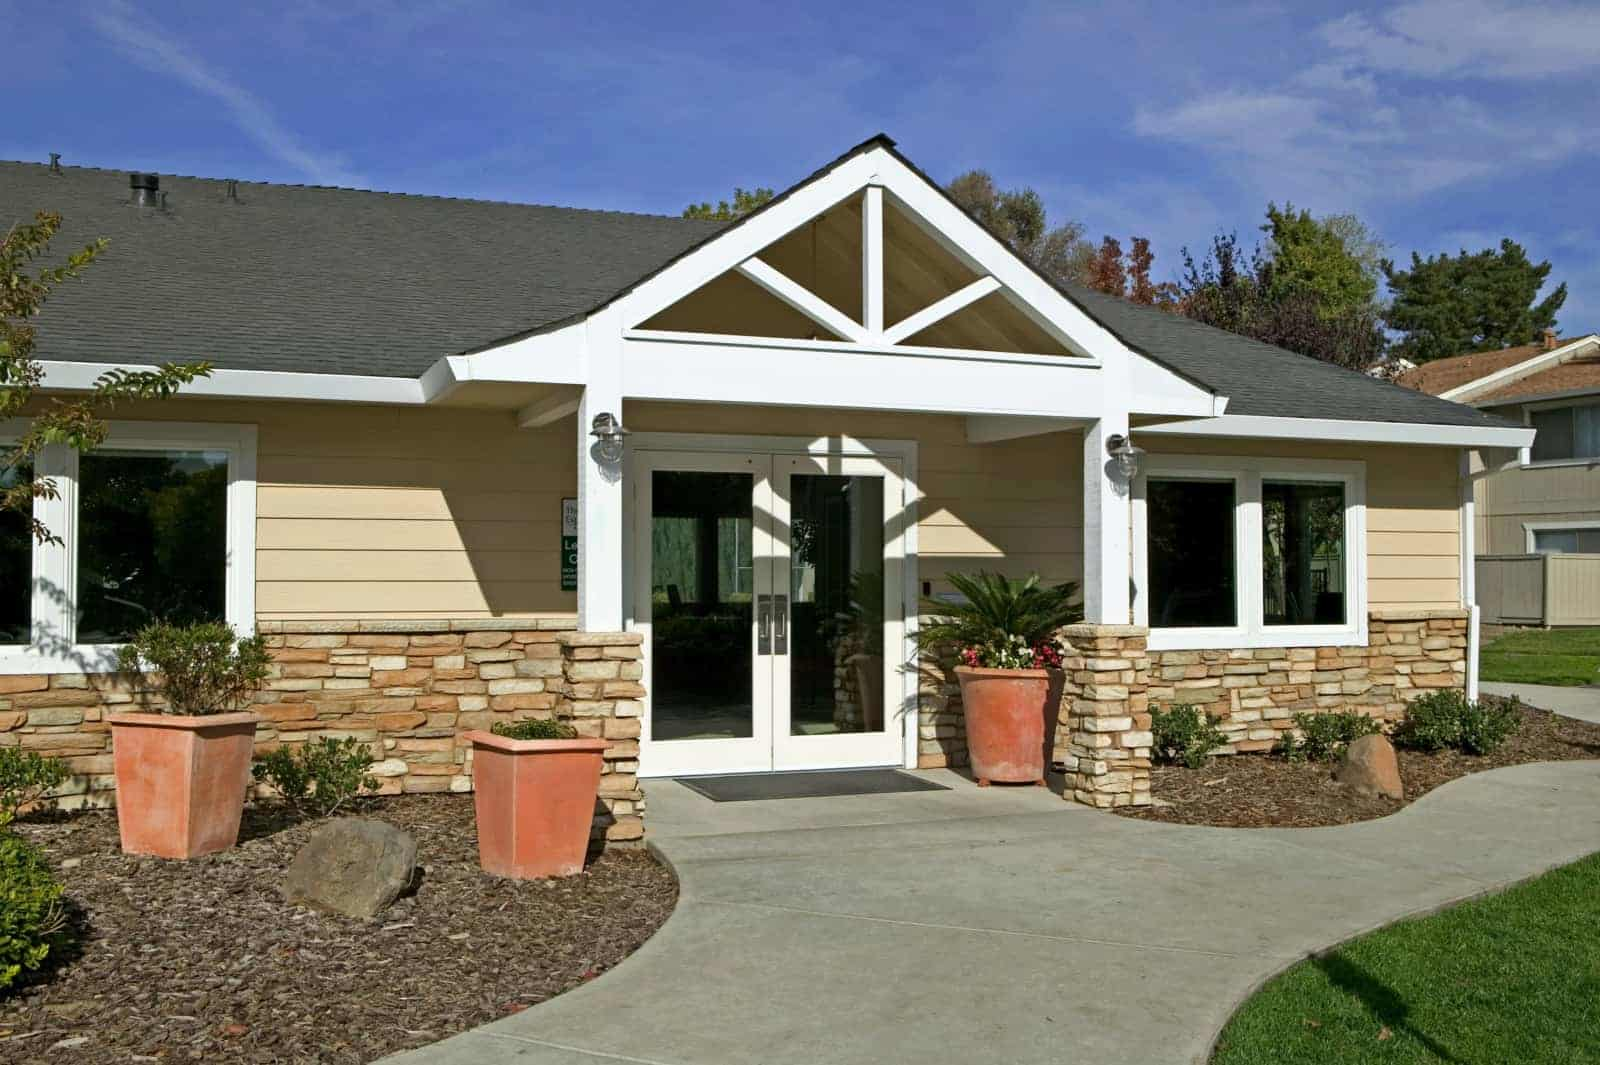 Exterior view of single story clubhouse building with double door entrance.